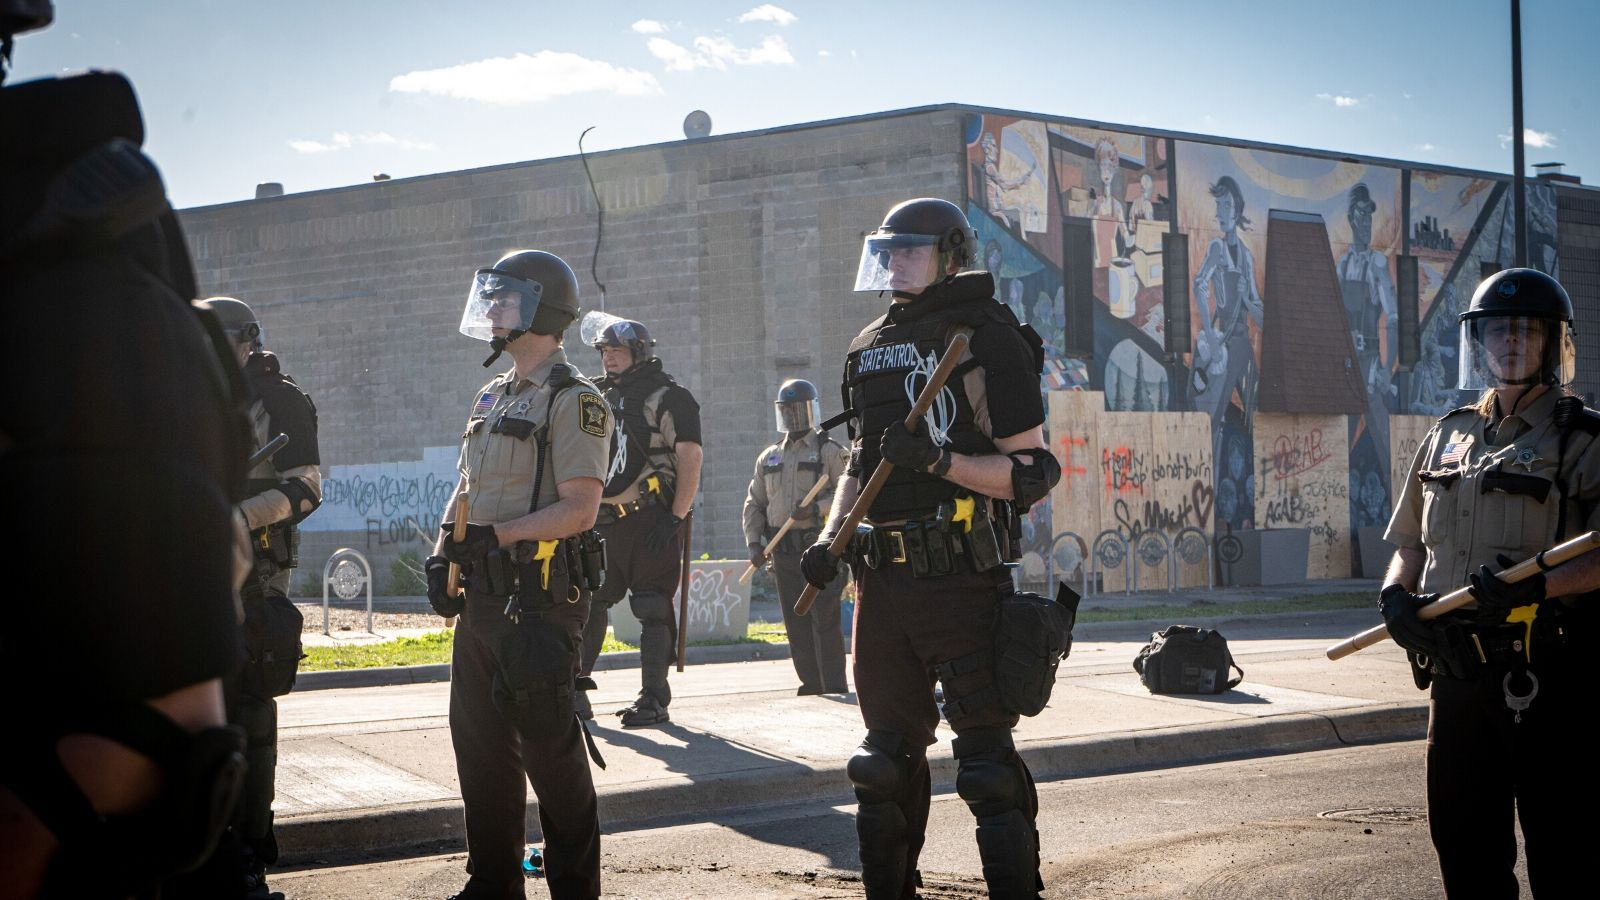 Police stand, armed, in front of protesters at the Black Lives Matter Protest.